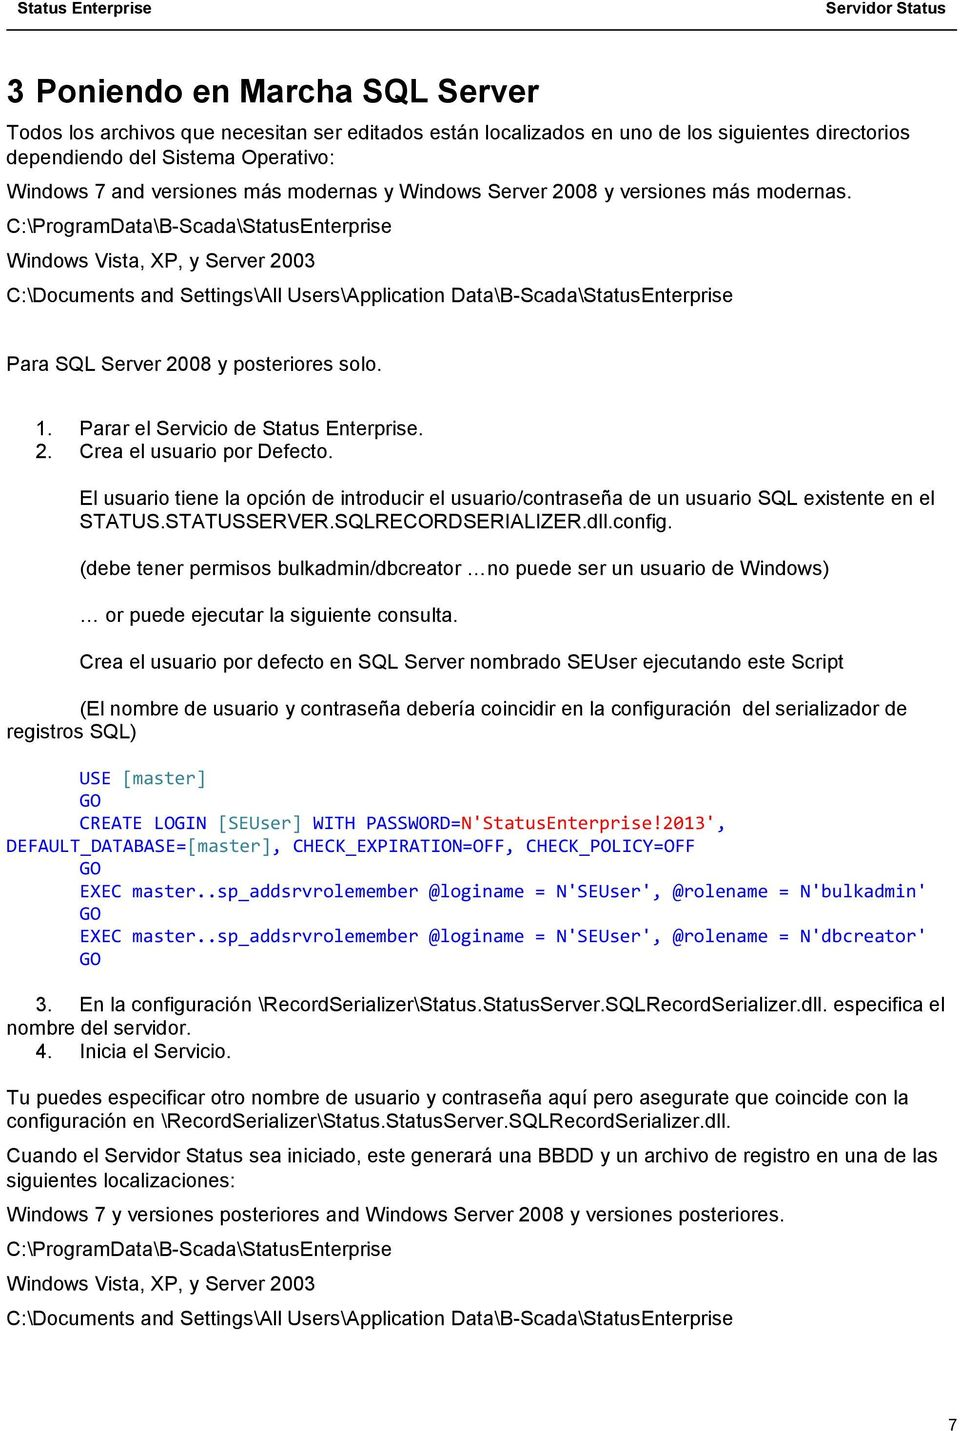 C:\ProgramData\B-Scada\StatusEnterprise Windows Vista, XP, y Server 2003 C:\Documents and Settings\All Users\Application Data\B-Scada\StatusEnterprise Para SQL Server 2008 y posteriores solo. 1.